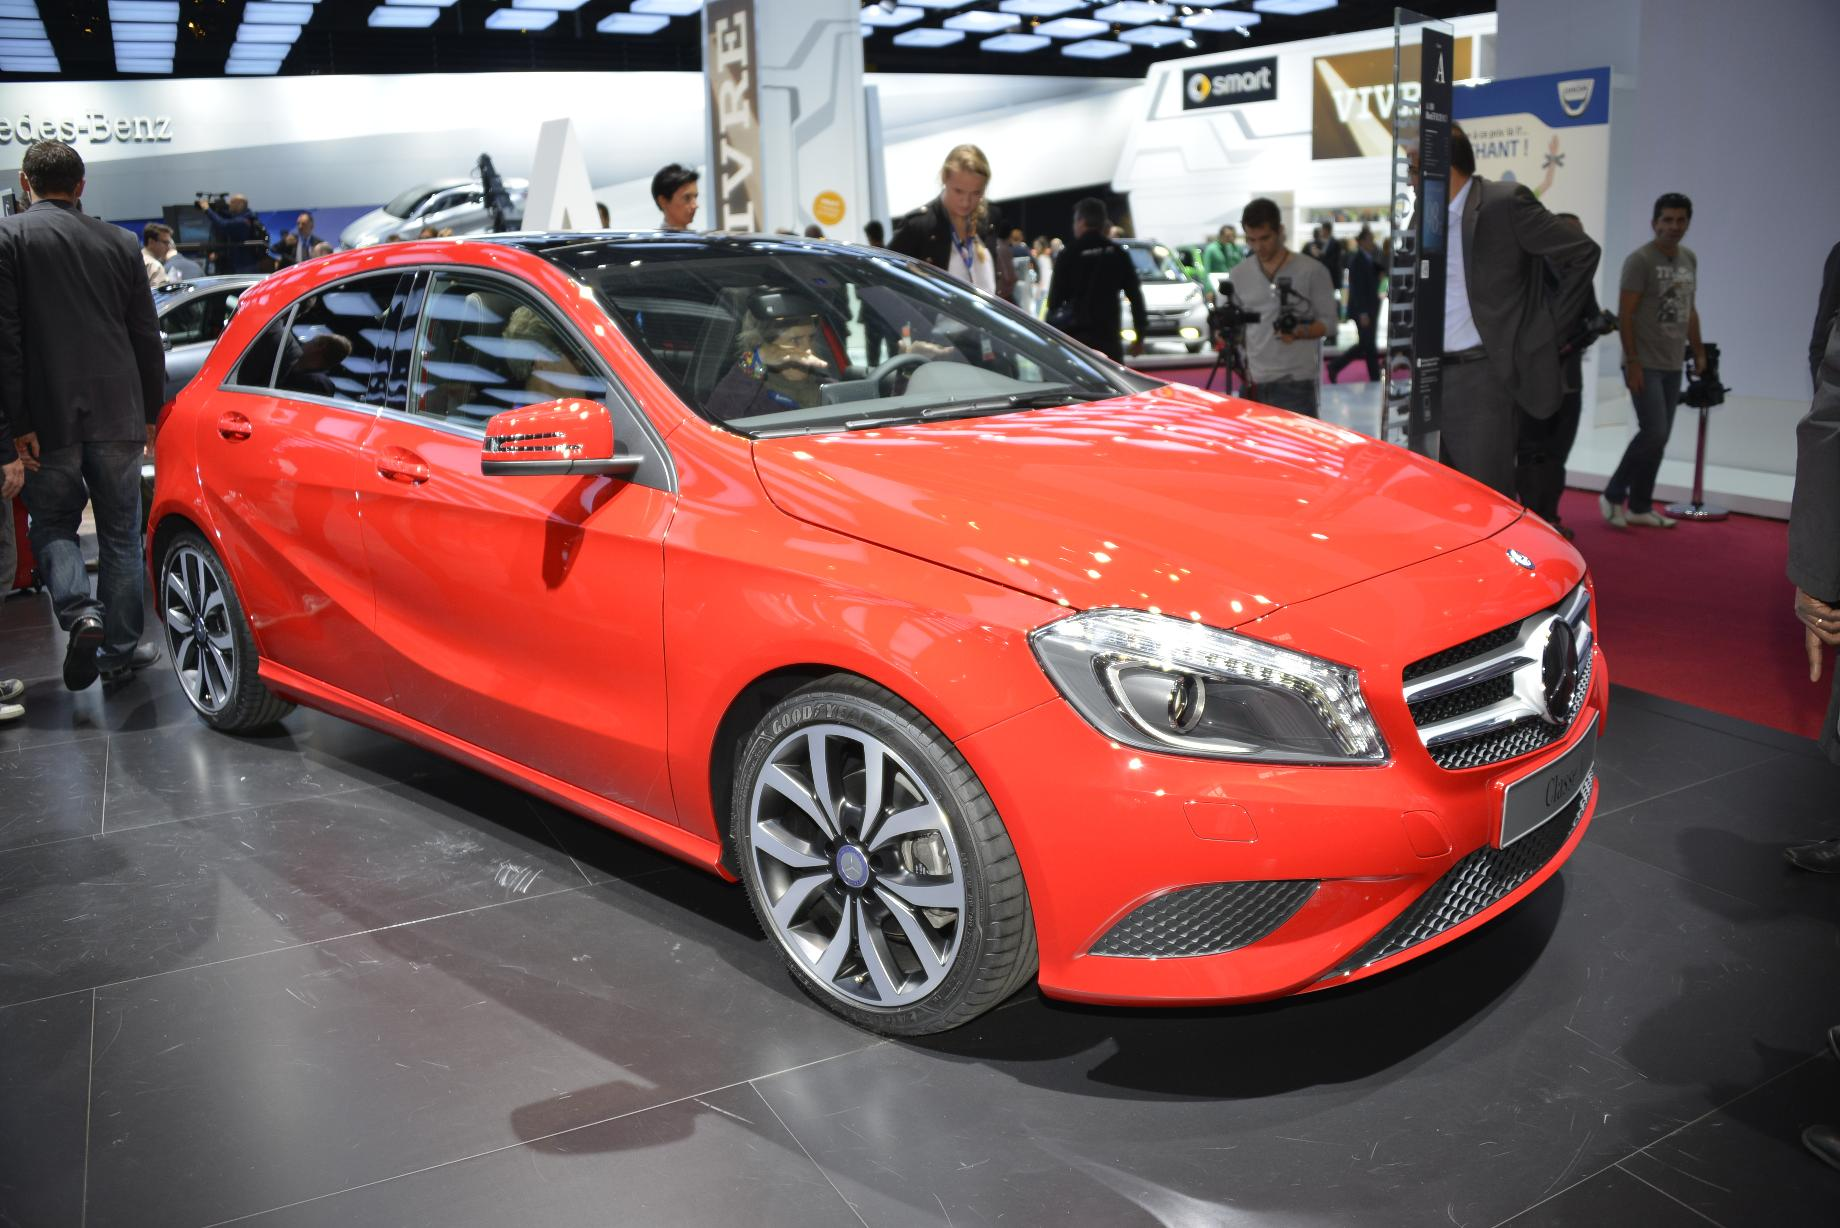 http://www.autoblog.gr/wp-content/gallery/mercedes-benz-a-class-and-cls-shooting-brake-live-in-paris-2012/mercedes-benz-a-class-live-in-paris-2012-1.jpg